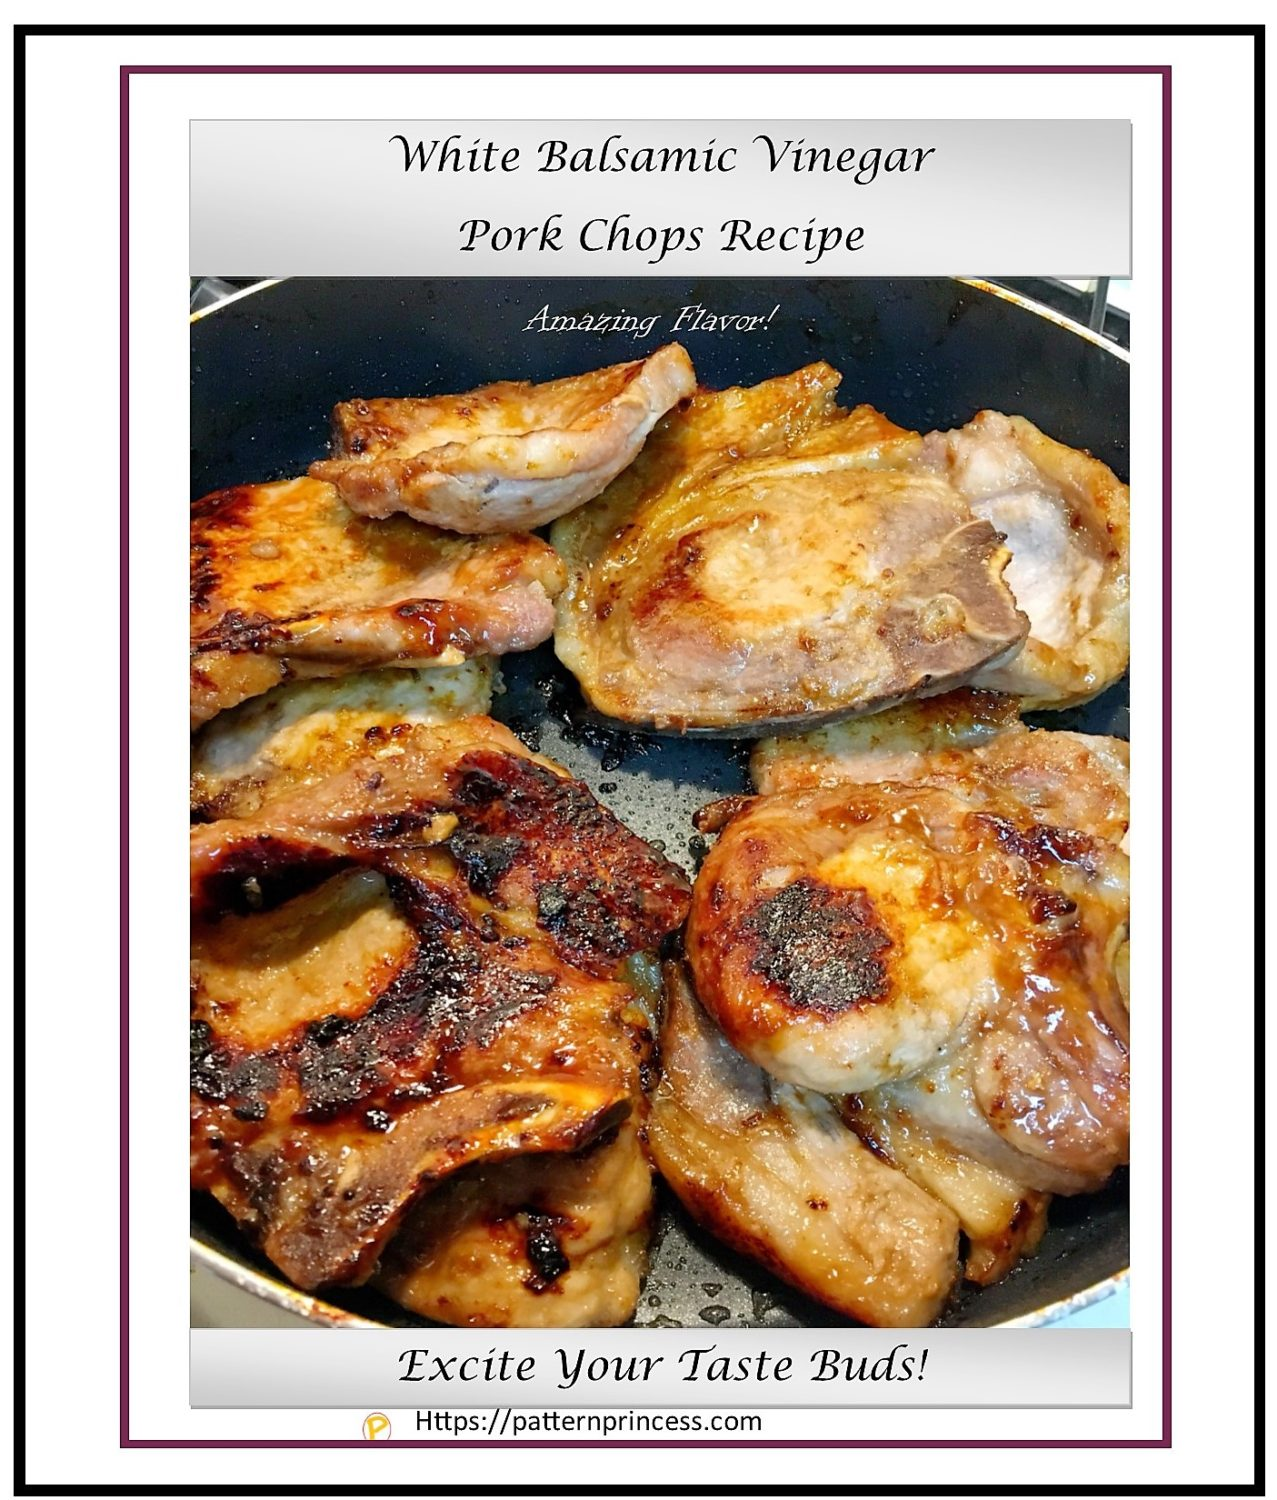 White Balsmic Vinegar Pork Chops Recipe 1